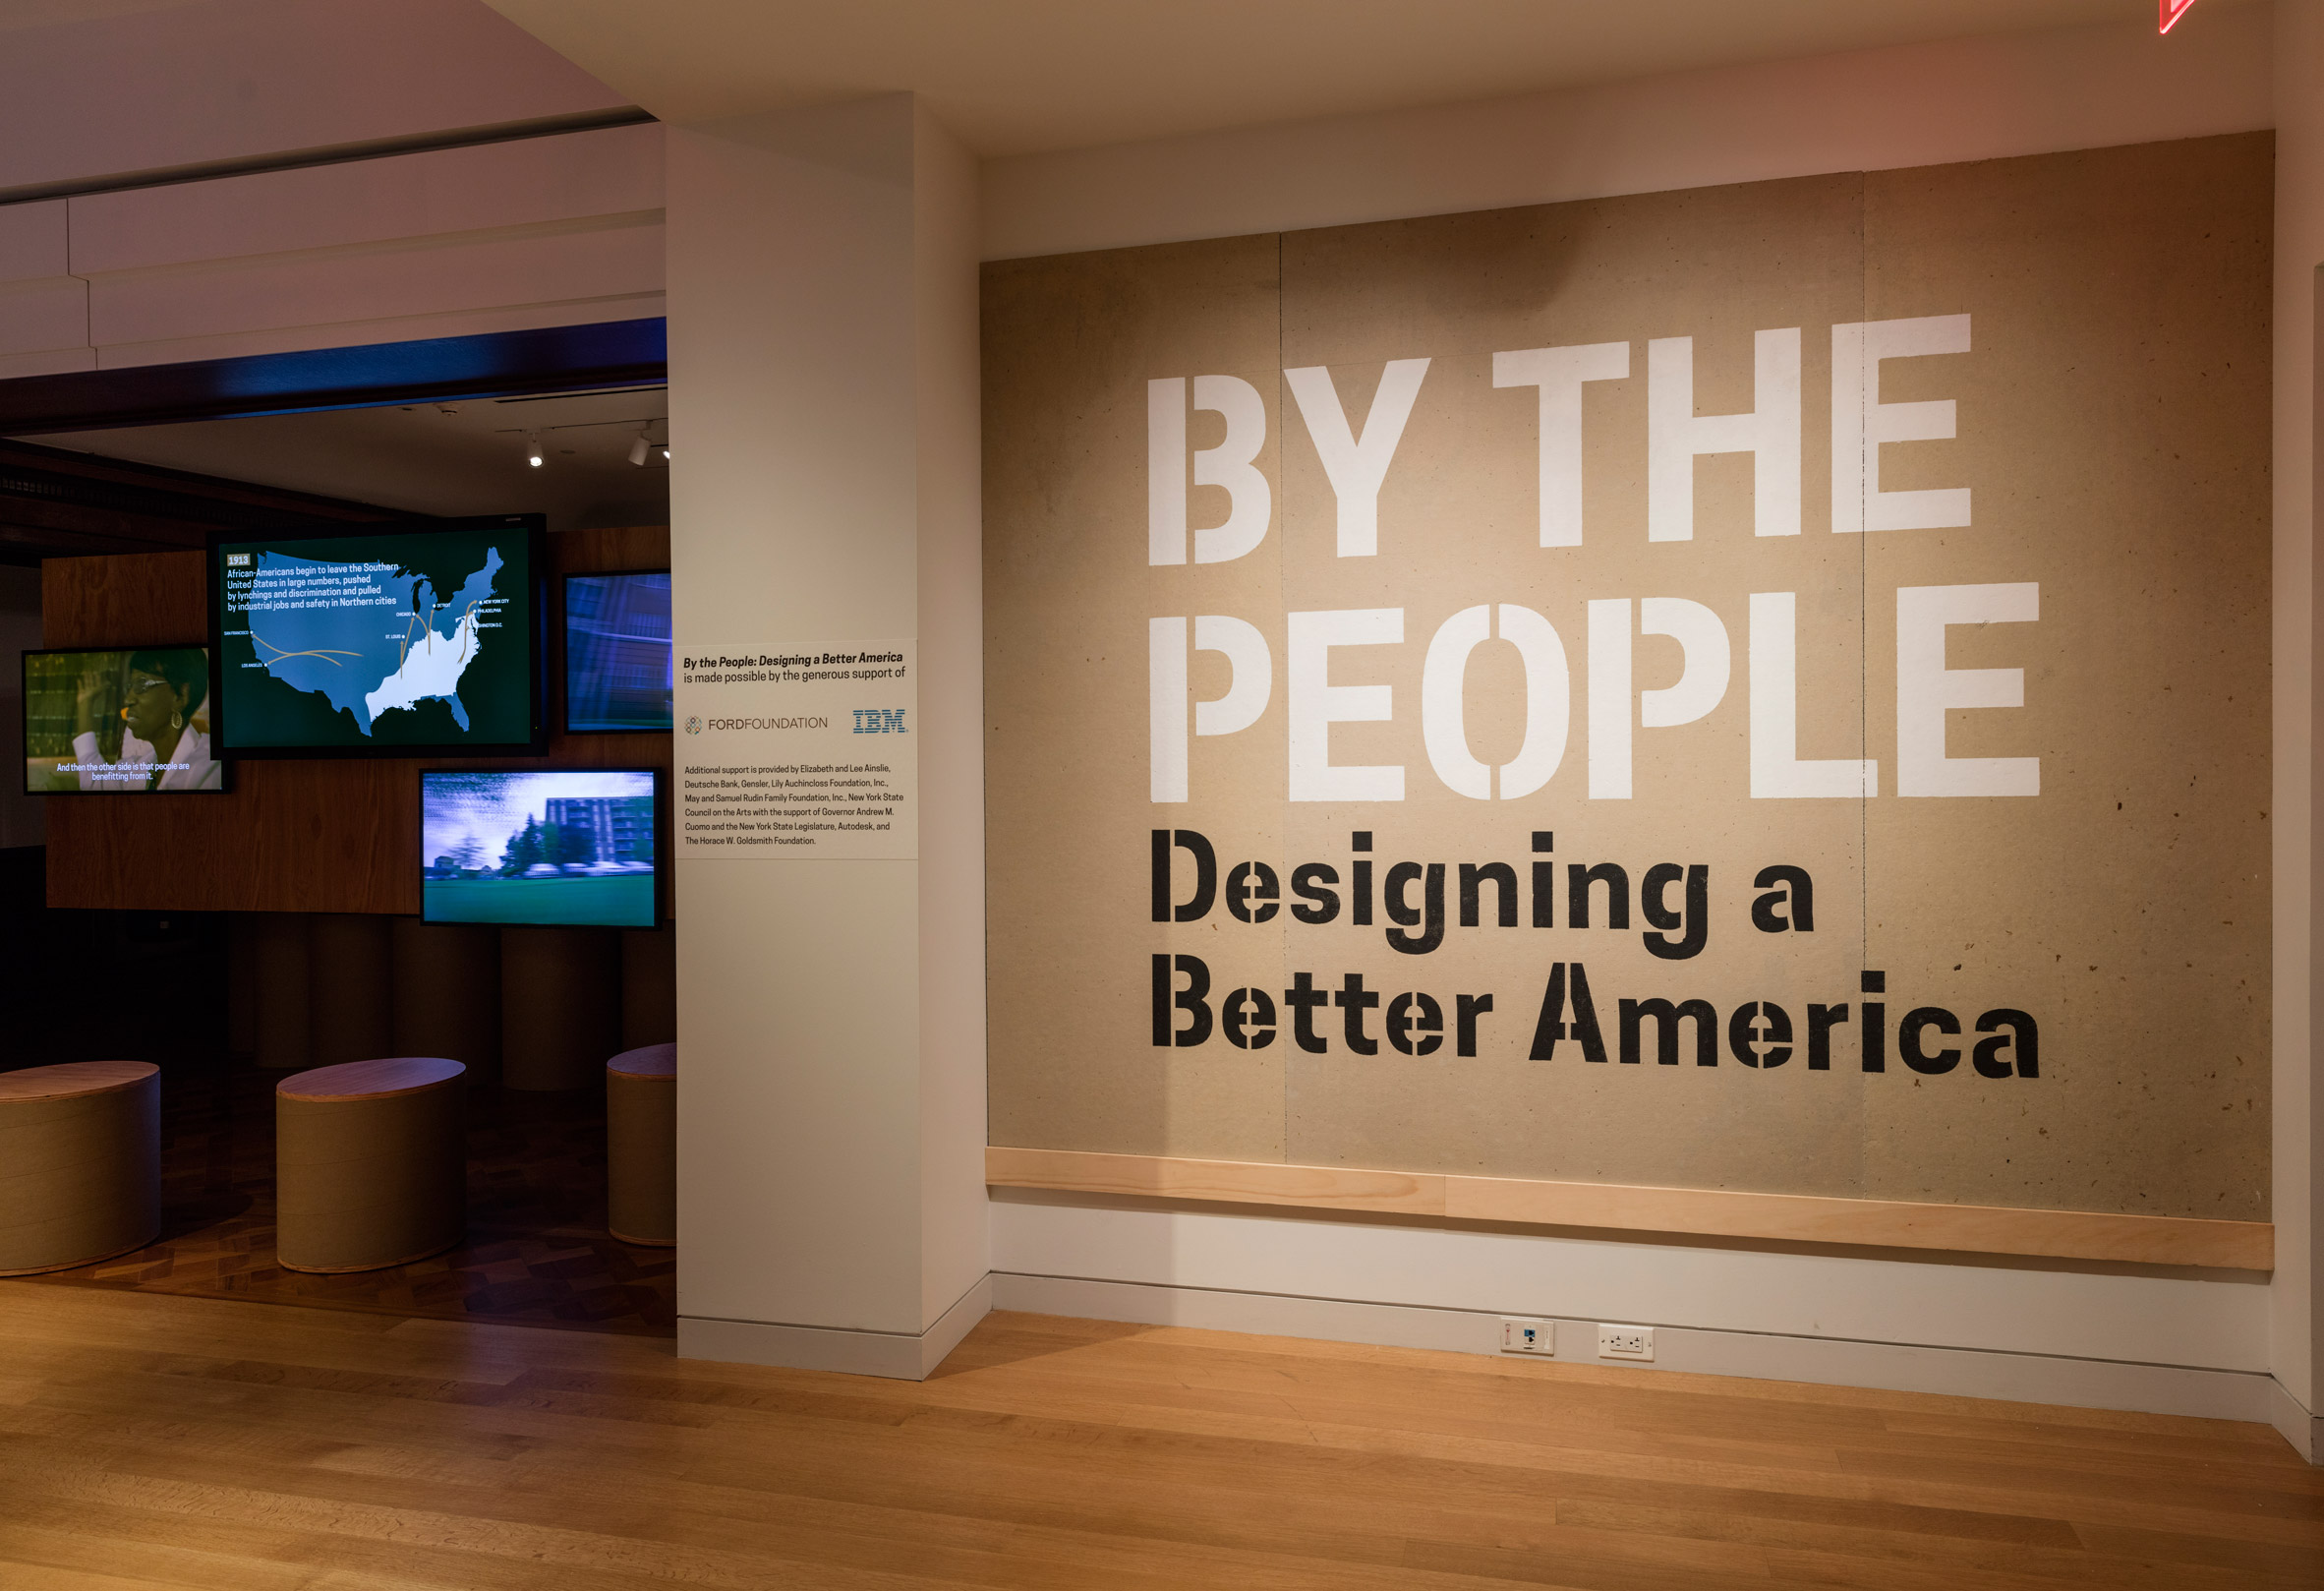 Socially responsible design in America presented in Cooper Hewitt exhibition